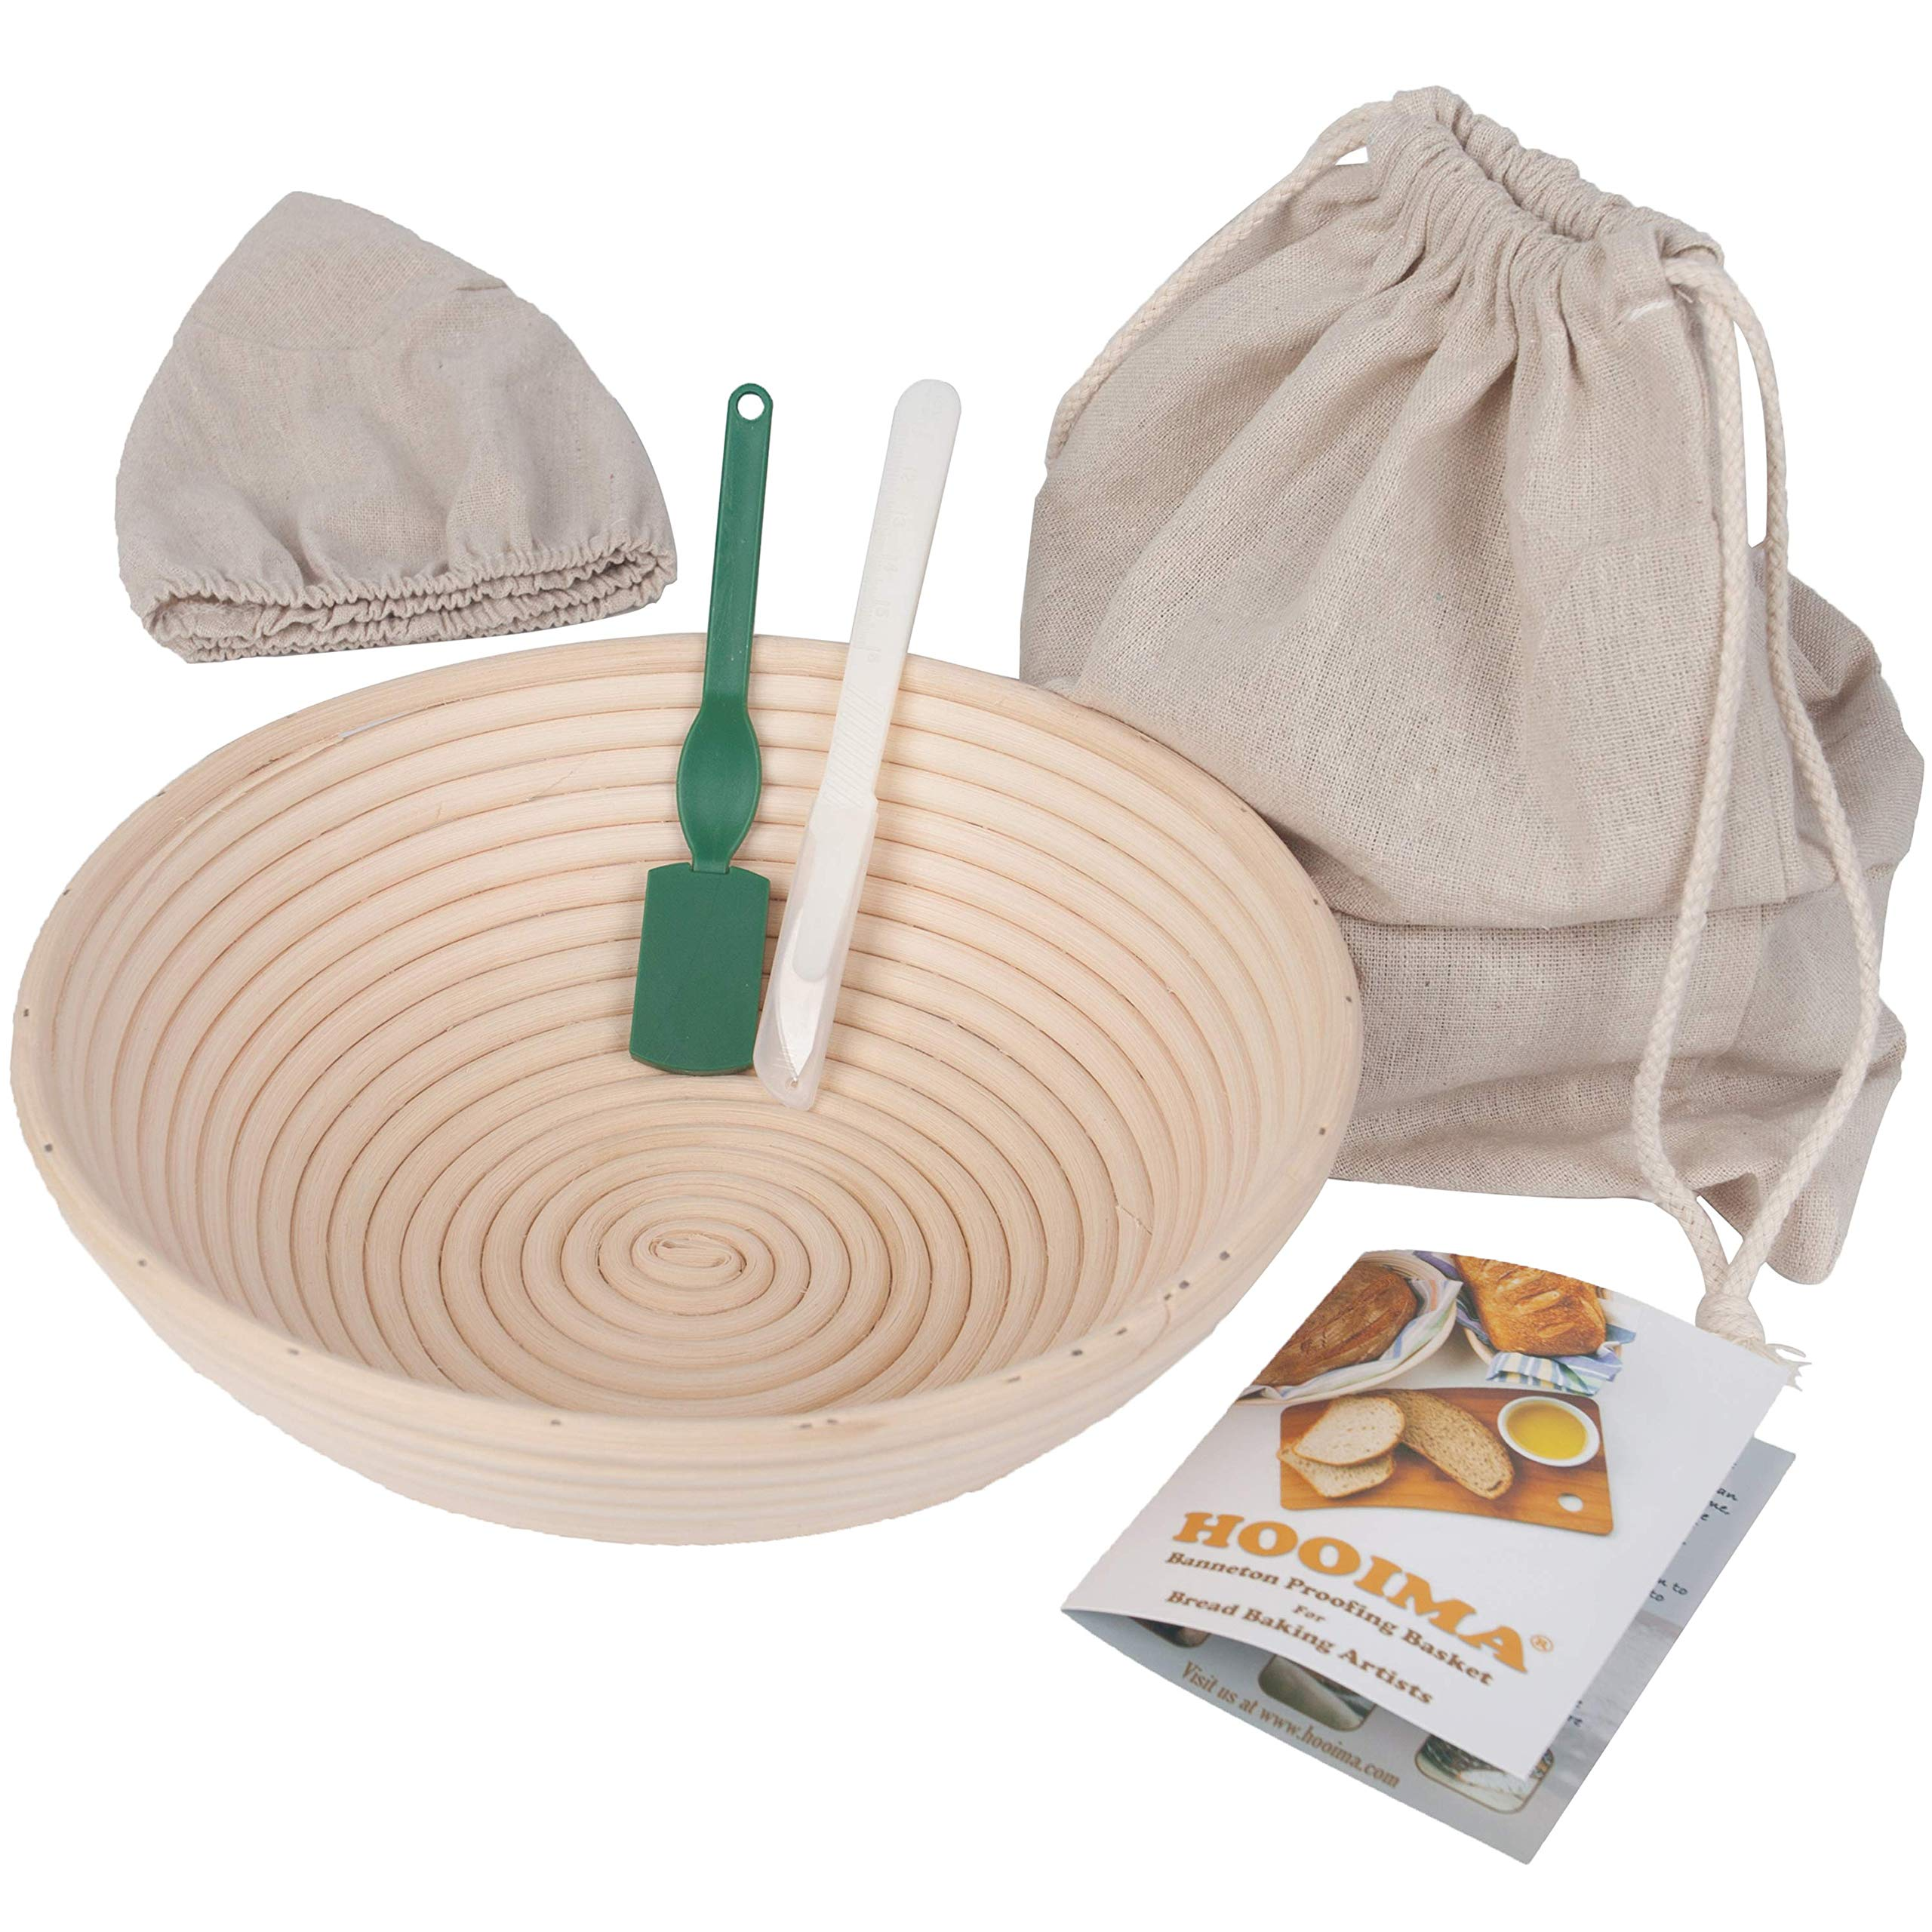 Banneton Sour Bread Basket - Sourdough Proofing Set - Bread Bowl & Linen Liner Cloth + Lames - 100% Natural Rattan Basket - Bread Bag Included - 10'' Brotform - for Homemade Bread by HOOIMA